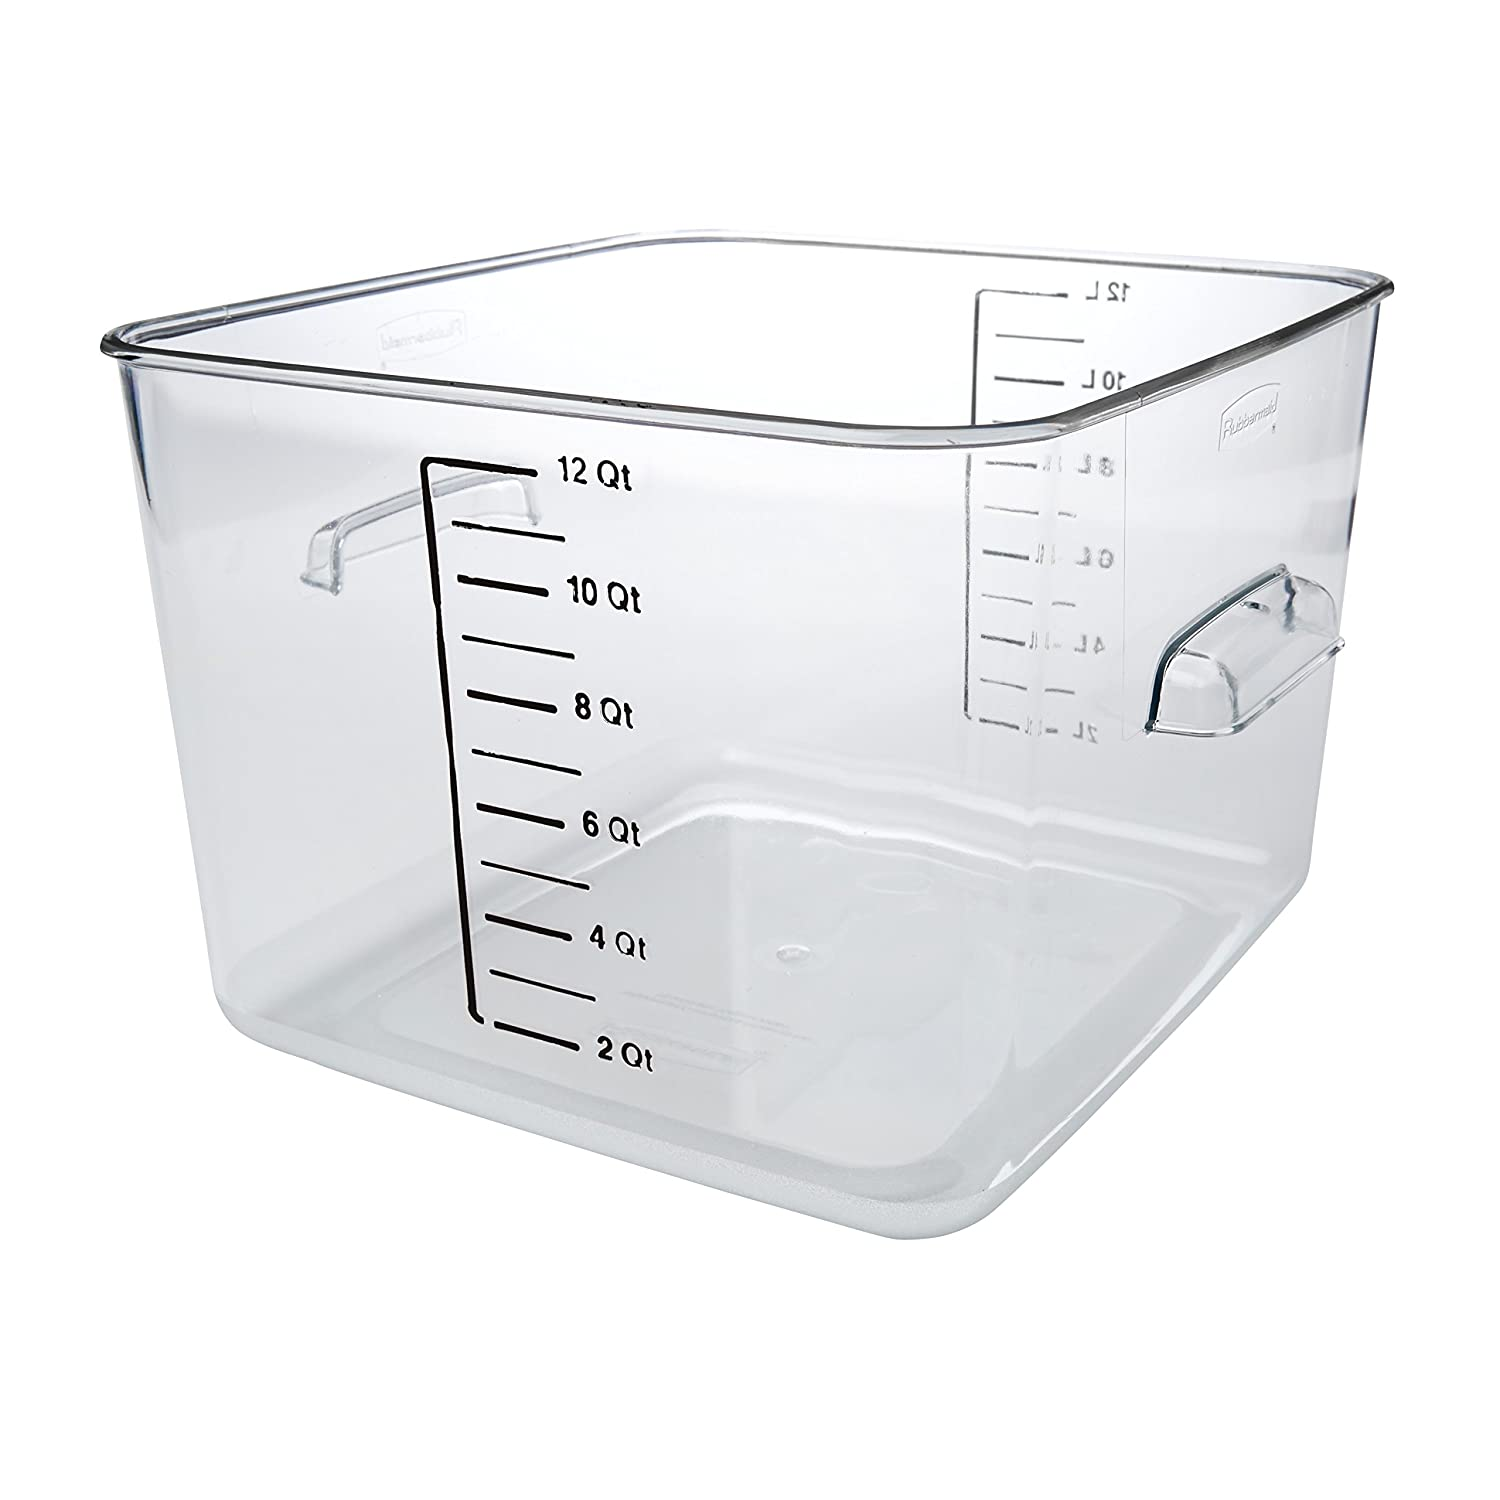 box tubs under organizer with drawers long tall stationery storage big tub bed rubbermaid bin plastic